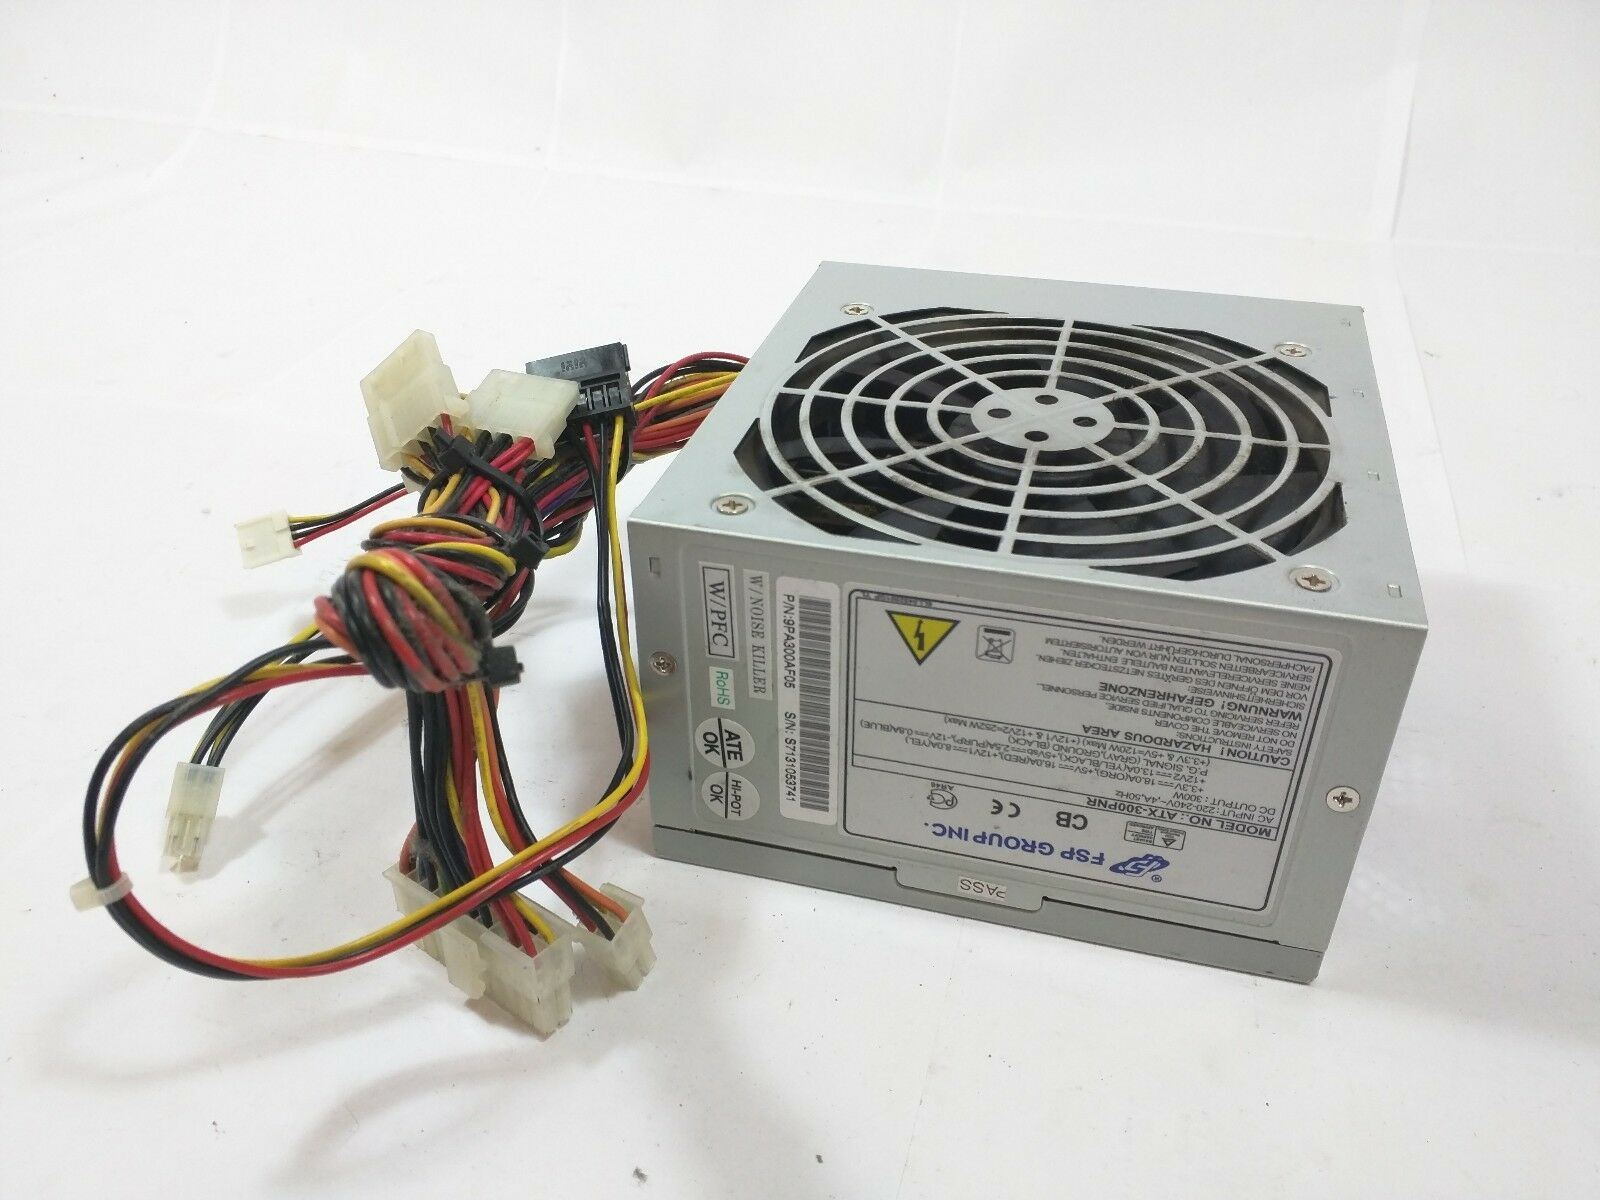 Details about FSP Group ATX-300PNR 9PA300AF05 300W ATX Power Supply